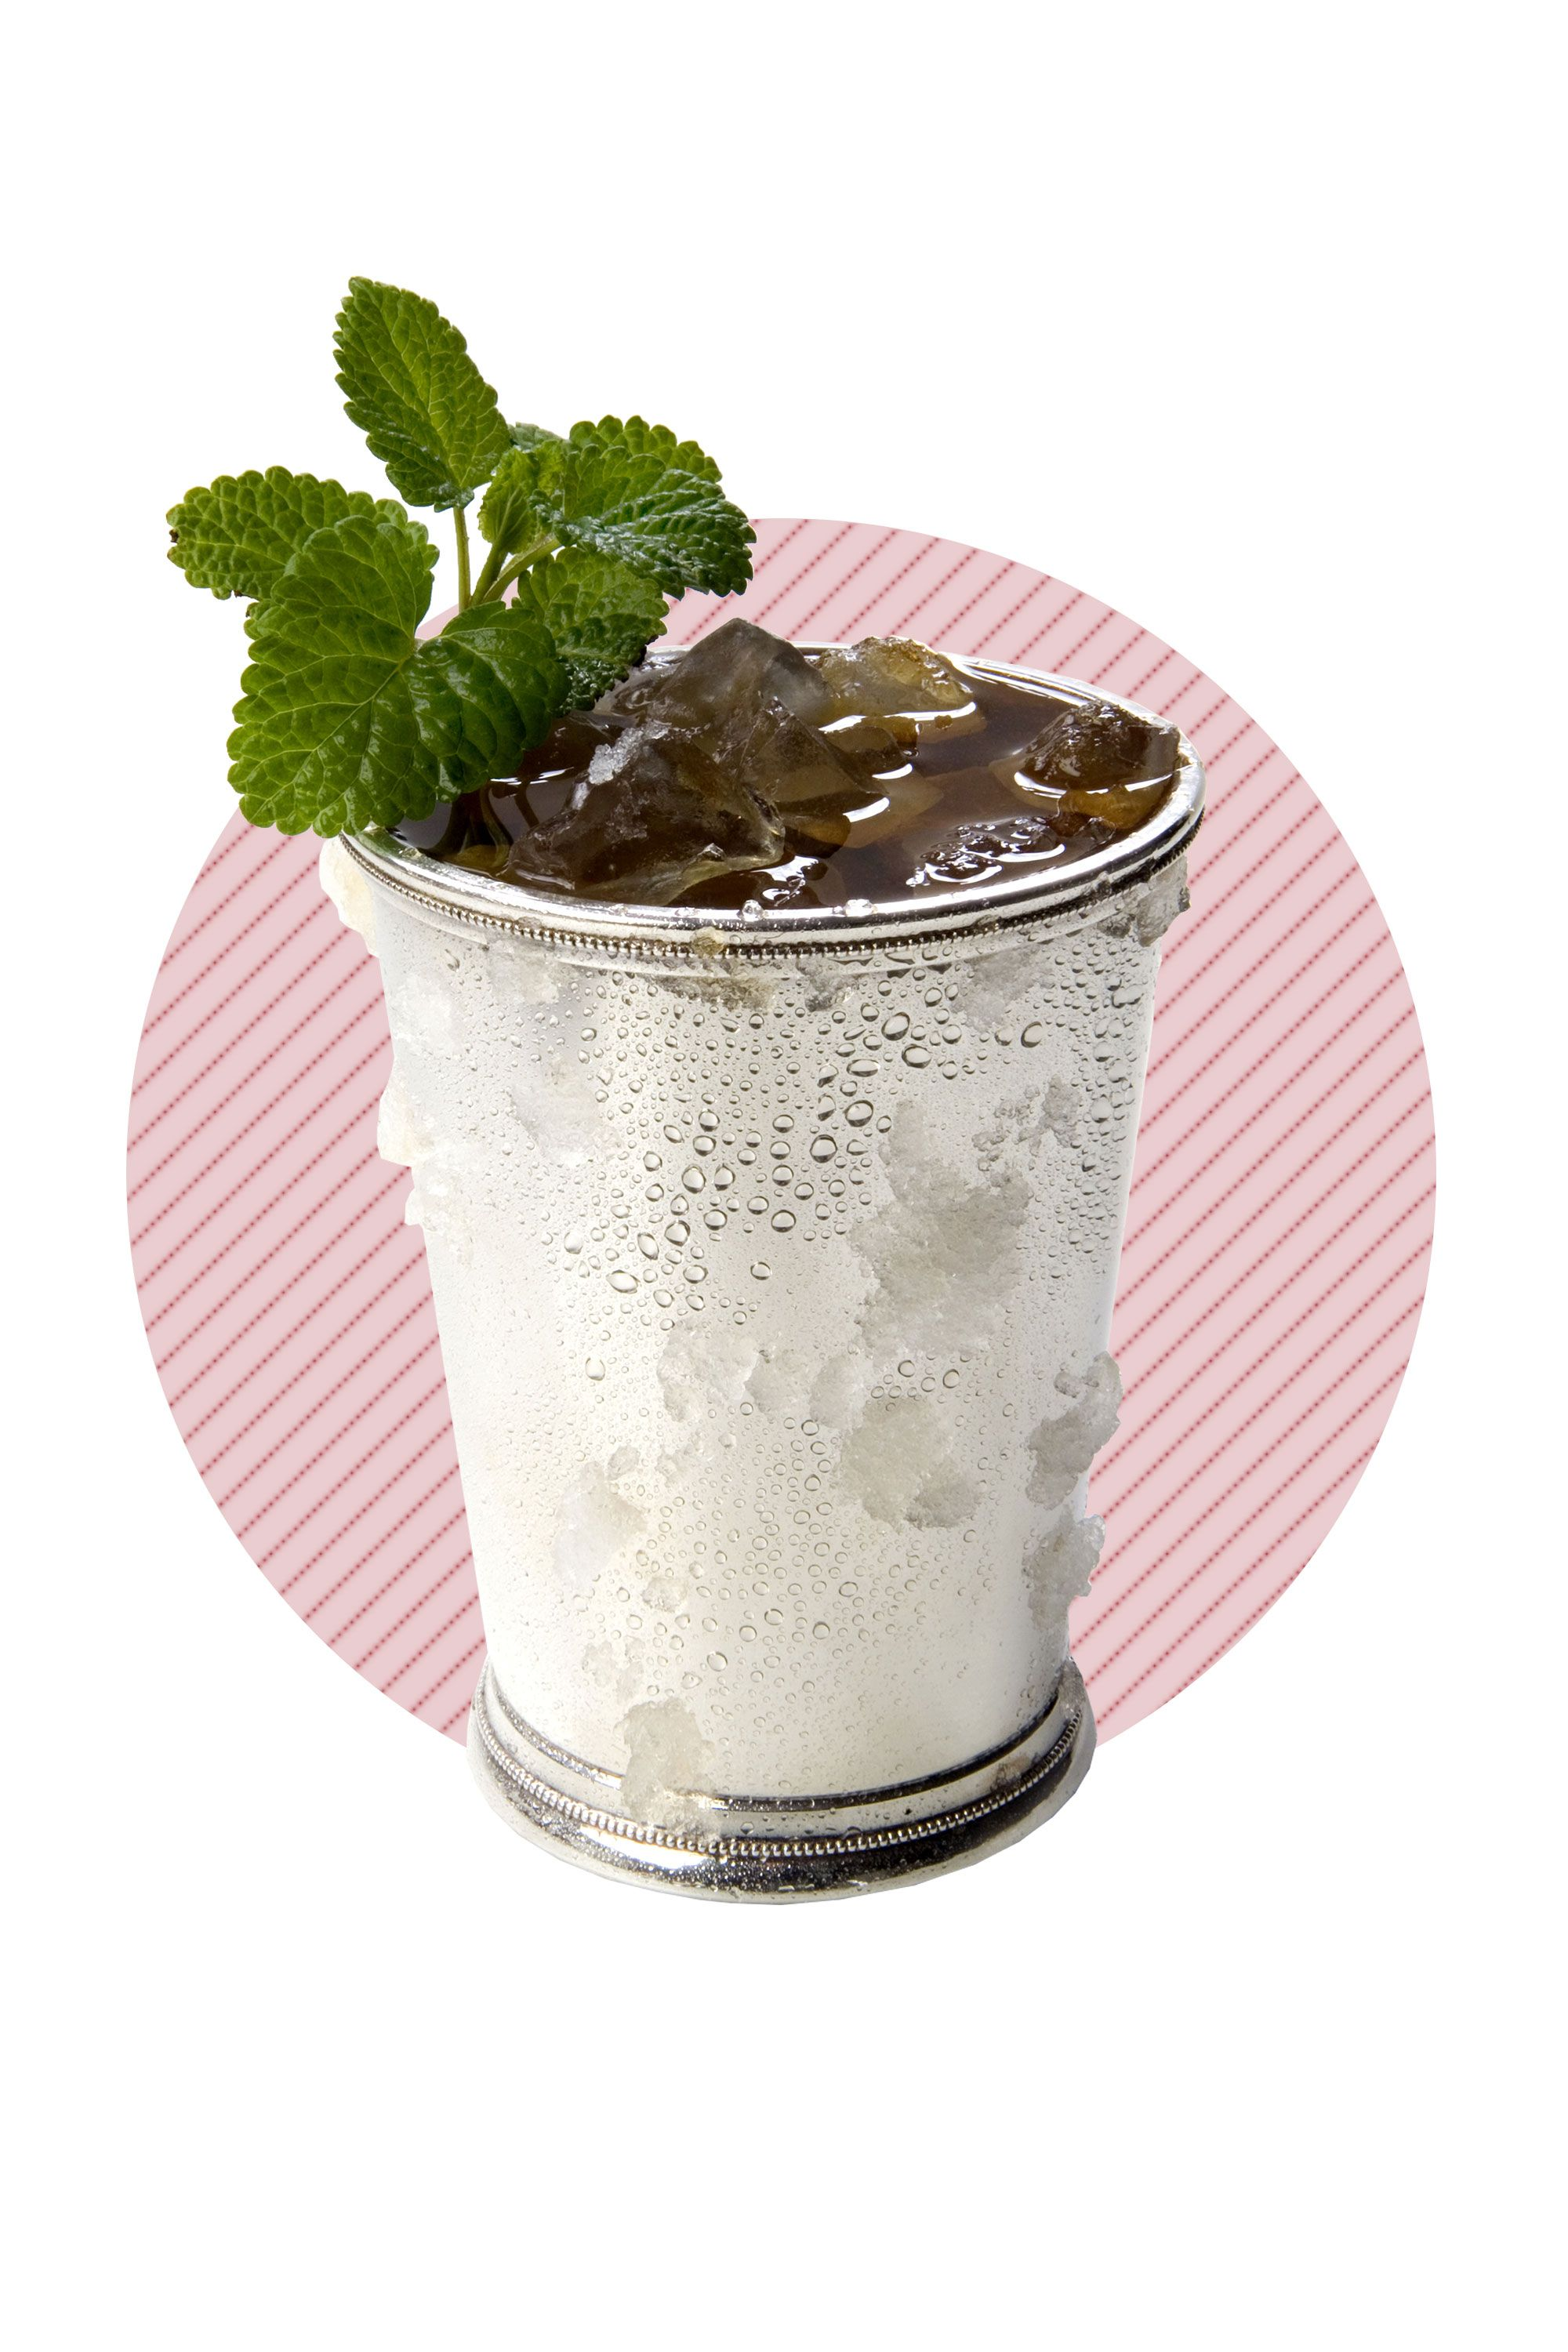 """<p>They may seem like similar drinks, but New York City–based food coach and nutritionist <a href=""""http://foodcoachnyc.com/"""" target=""""_blank"""">Dana James</a>, M.S., says ordering a mint julep over the minty, rum-based drink is the difference between throwing back 250 calories and 170 calories per serving. It goes without saying, but those 80 extra calories can seriously add up, especially if you're considering ordering up a few apps for the table. </p>"""